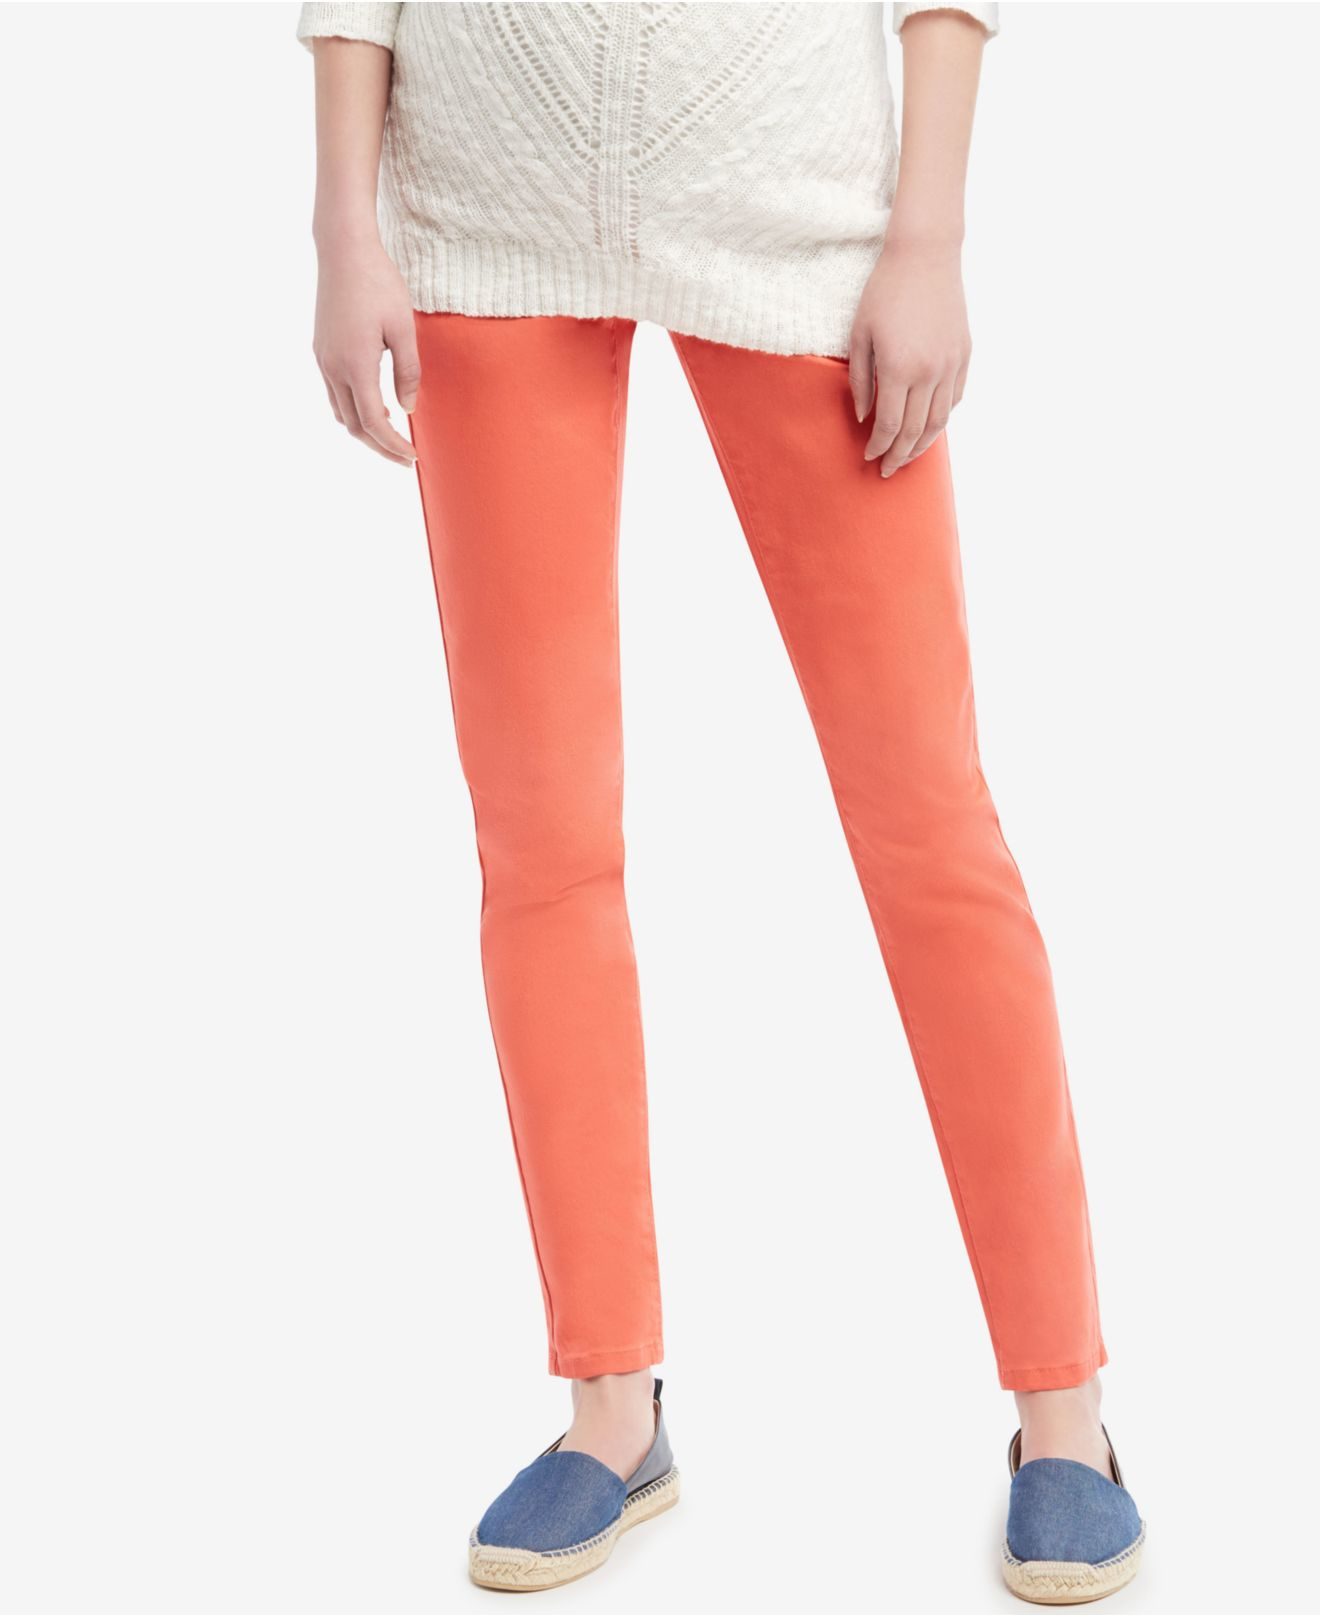 Red Hanger. Bootcut Dress Pants for Women -Stretch Comfy Work Pull on Womens Pant. from $ 23 45 Prime. out of 5 stars 1, Siracusa Maternity Skinny Jeans - Push Up Butt Lifter Effect, Slim Fit Pant - Made in Italy $ 58 87 Prime. WuhouPro. Womens Super Stretch Adjustable Maternity Jeans $ 19 99 Prime. out of 5 stars 6.